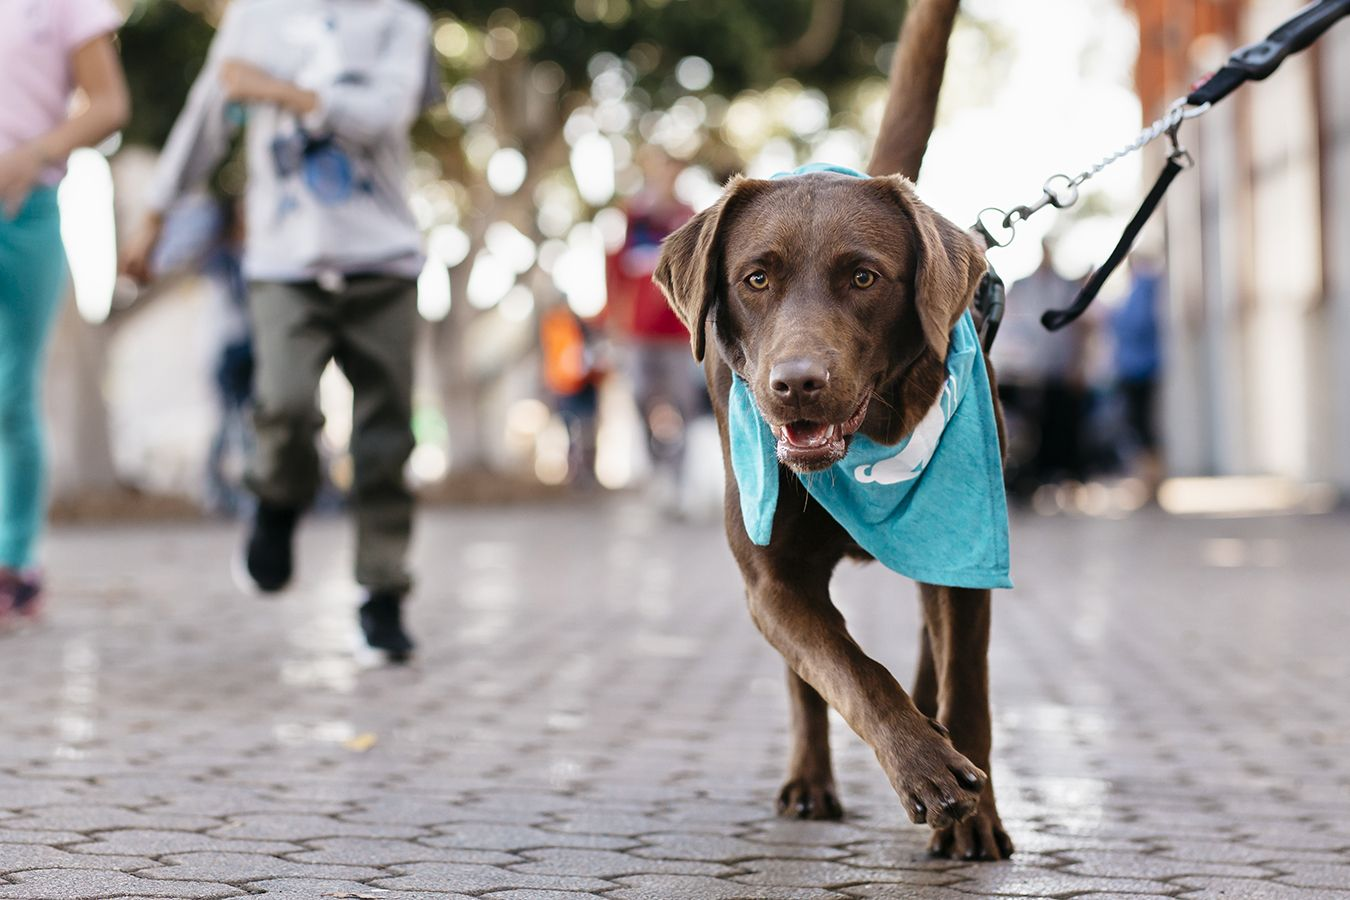 Rspca Million Paws Walk 2019 May 19 Australian Dog Lover With Images Dogs Day Out Fight Animal Cruelty Dog Lovers